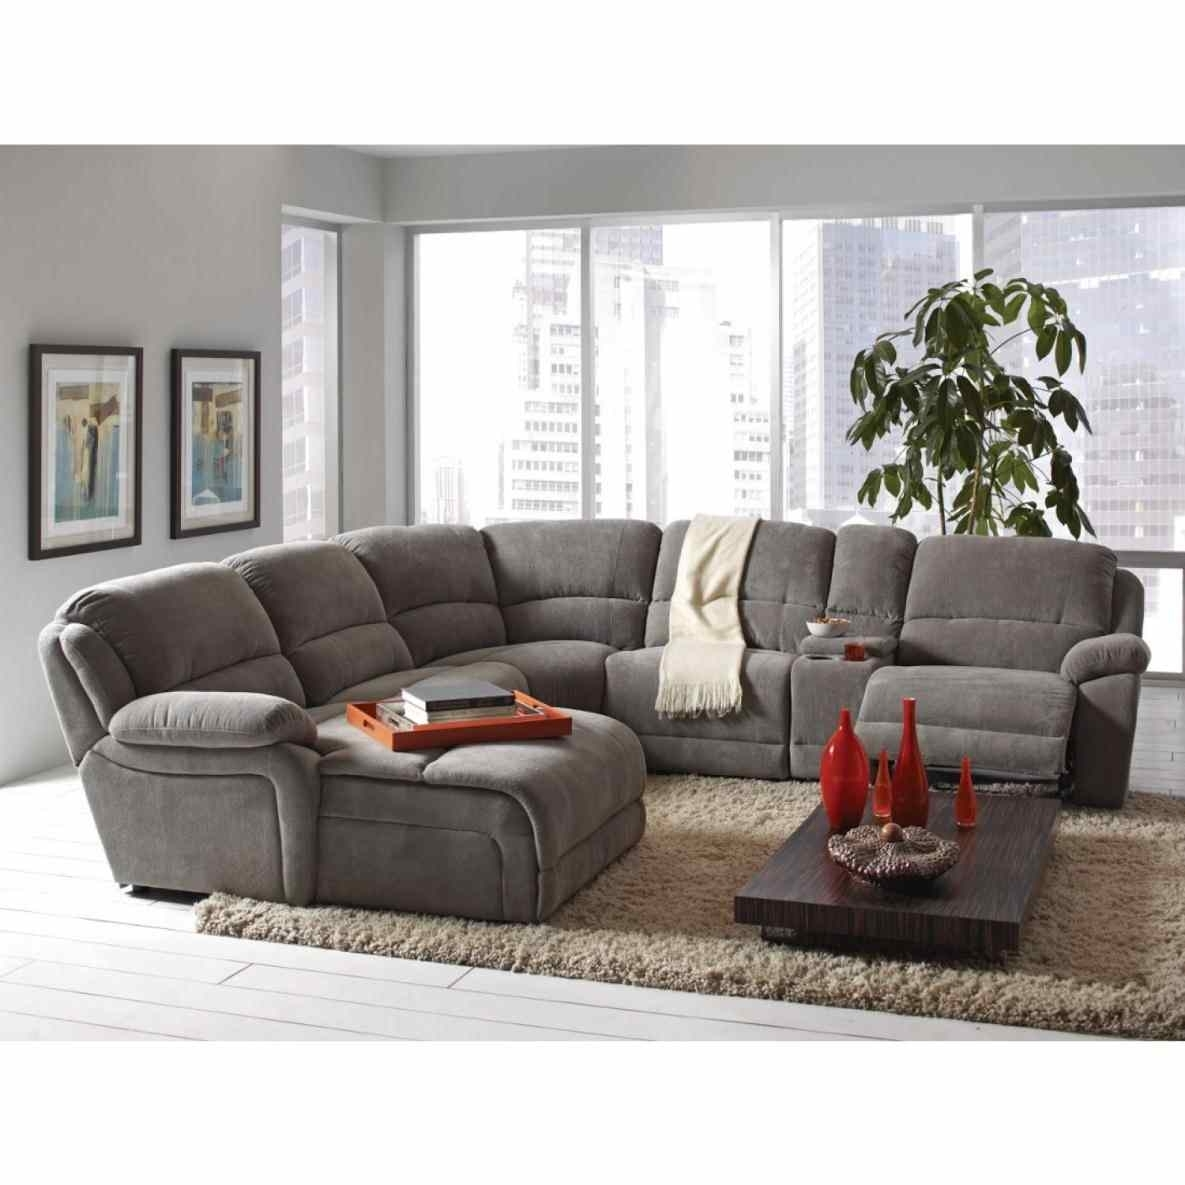 Sectional Sofa : Ashley Leather Sectional Armchair With Cup Holder 5 Throughout Jedd Fabric Reclining Sectional Sofas (Image 8 of 10)